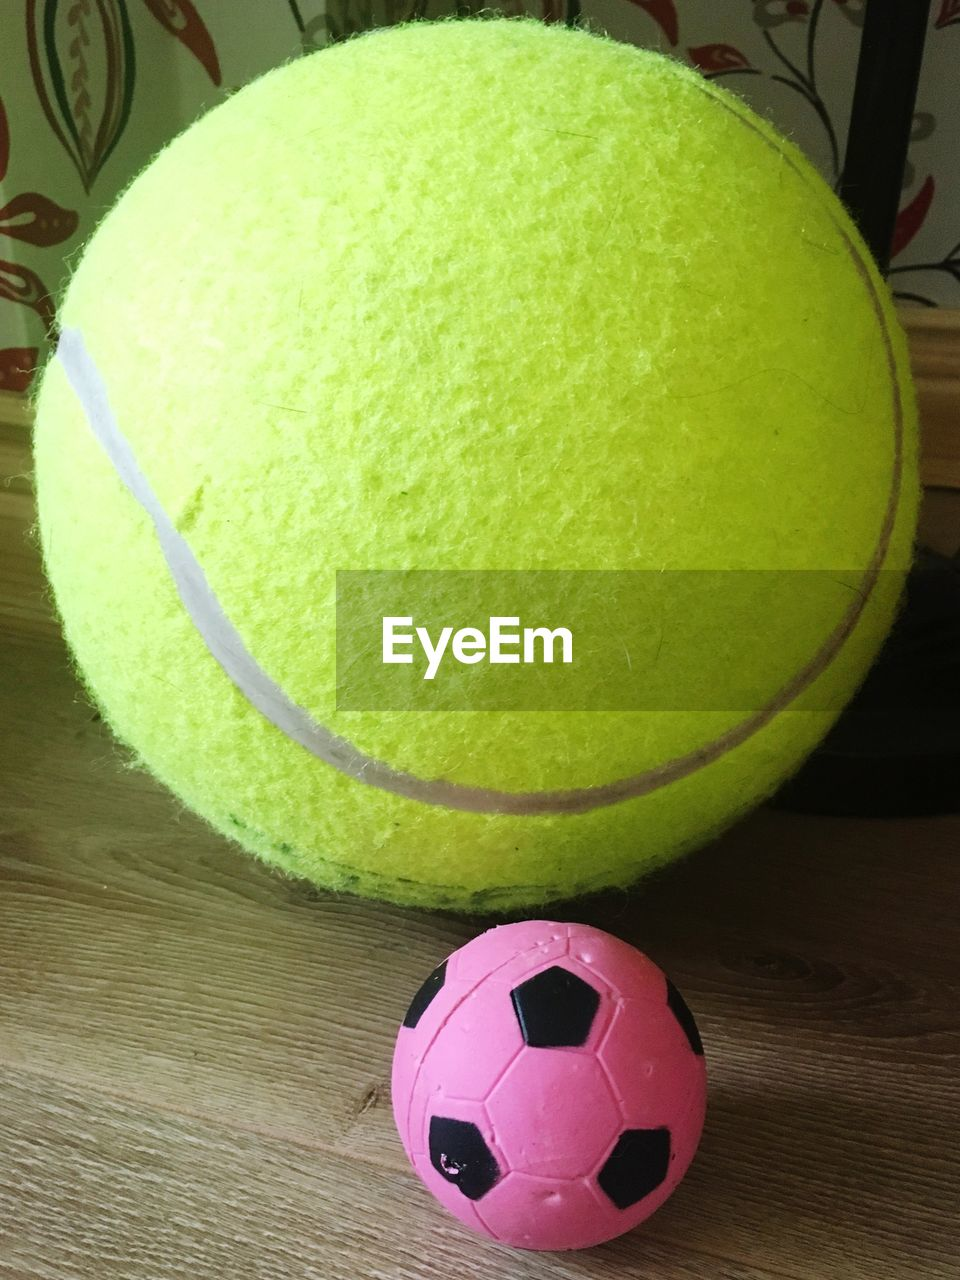 ball, still life, sport, table, indoors, tennis ball, no people, close-up, tennis, day, freshness